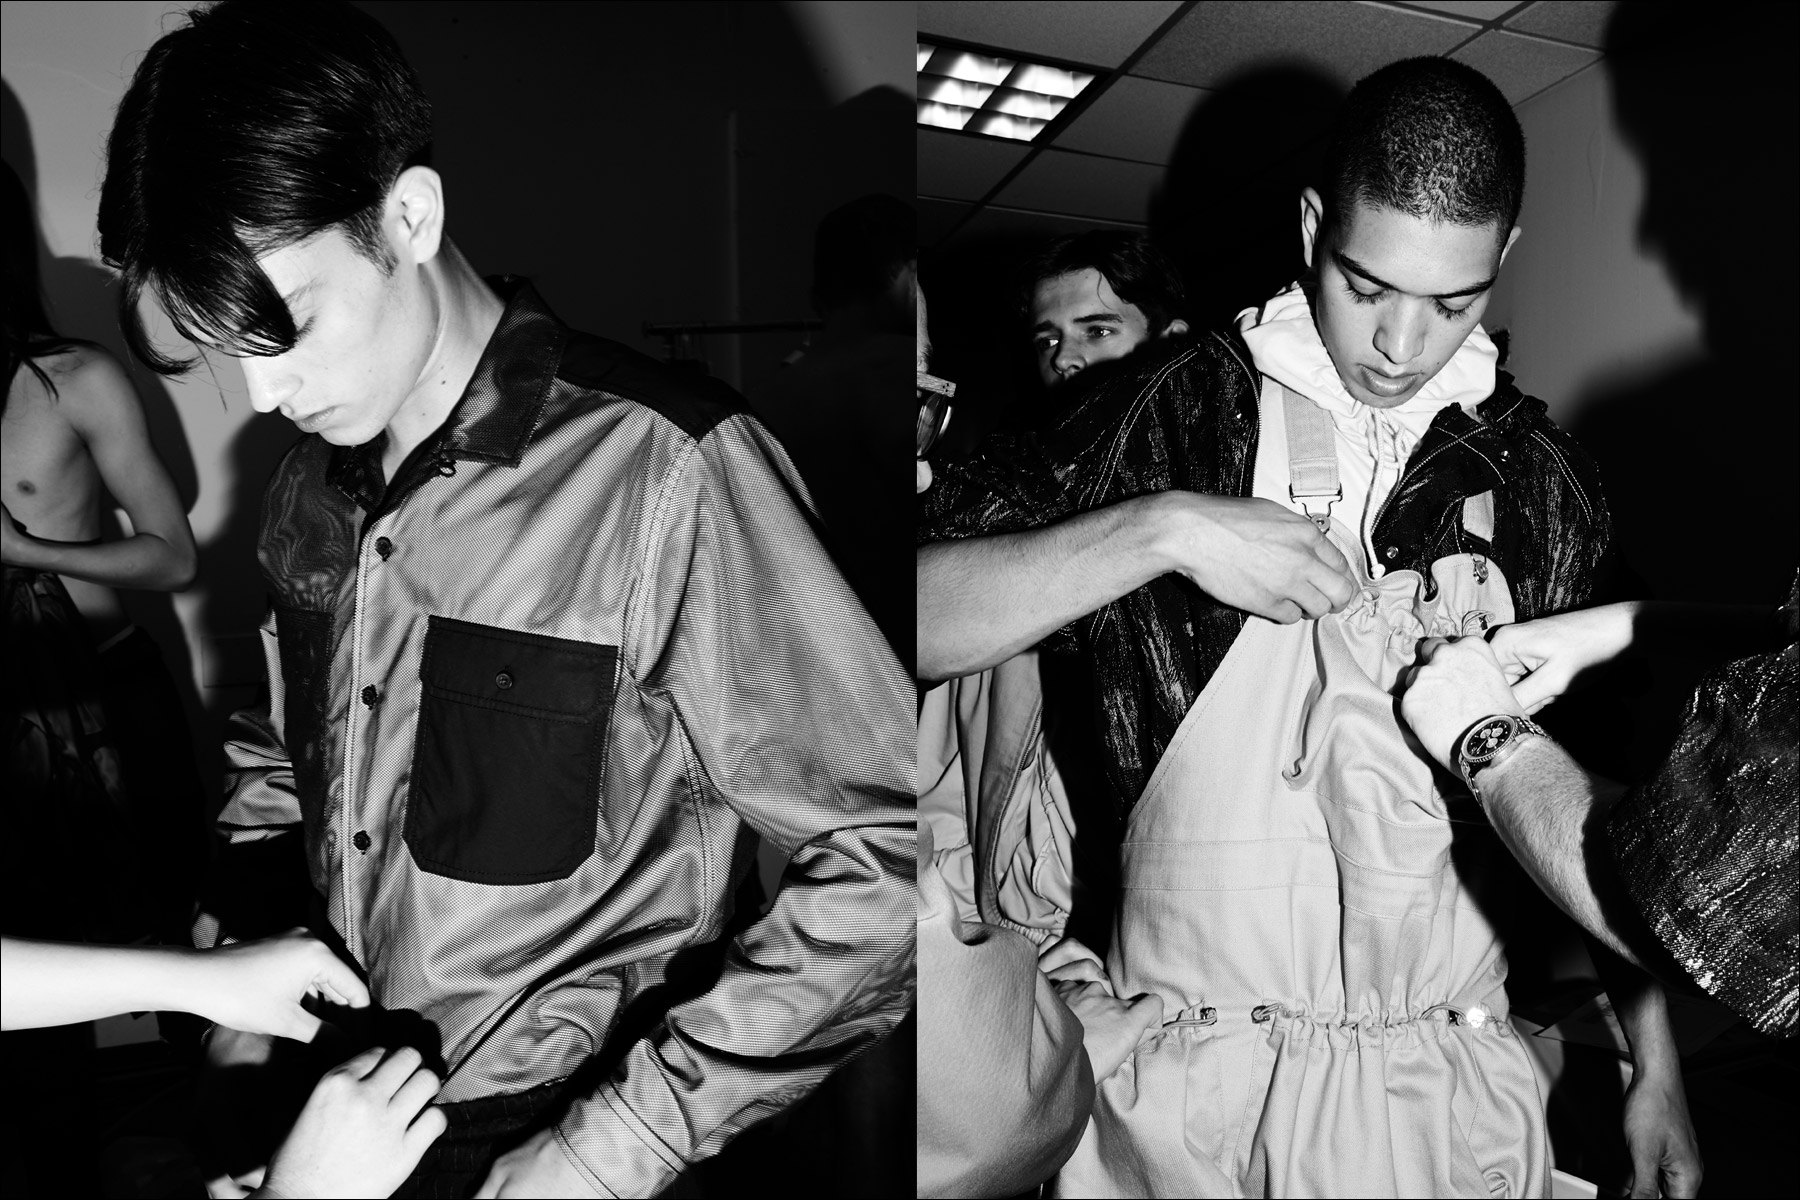 Male models snapped being prepped backstage before the Feng Chen Wang menswear show. Photographed by Alexander Thompson for Ponyboy magazine New York.